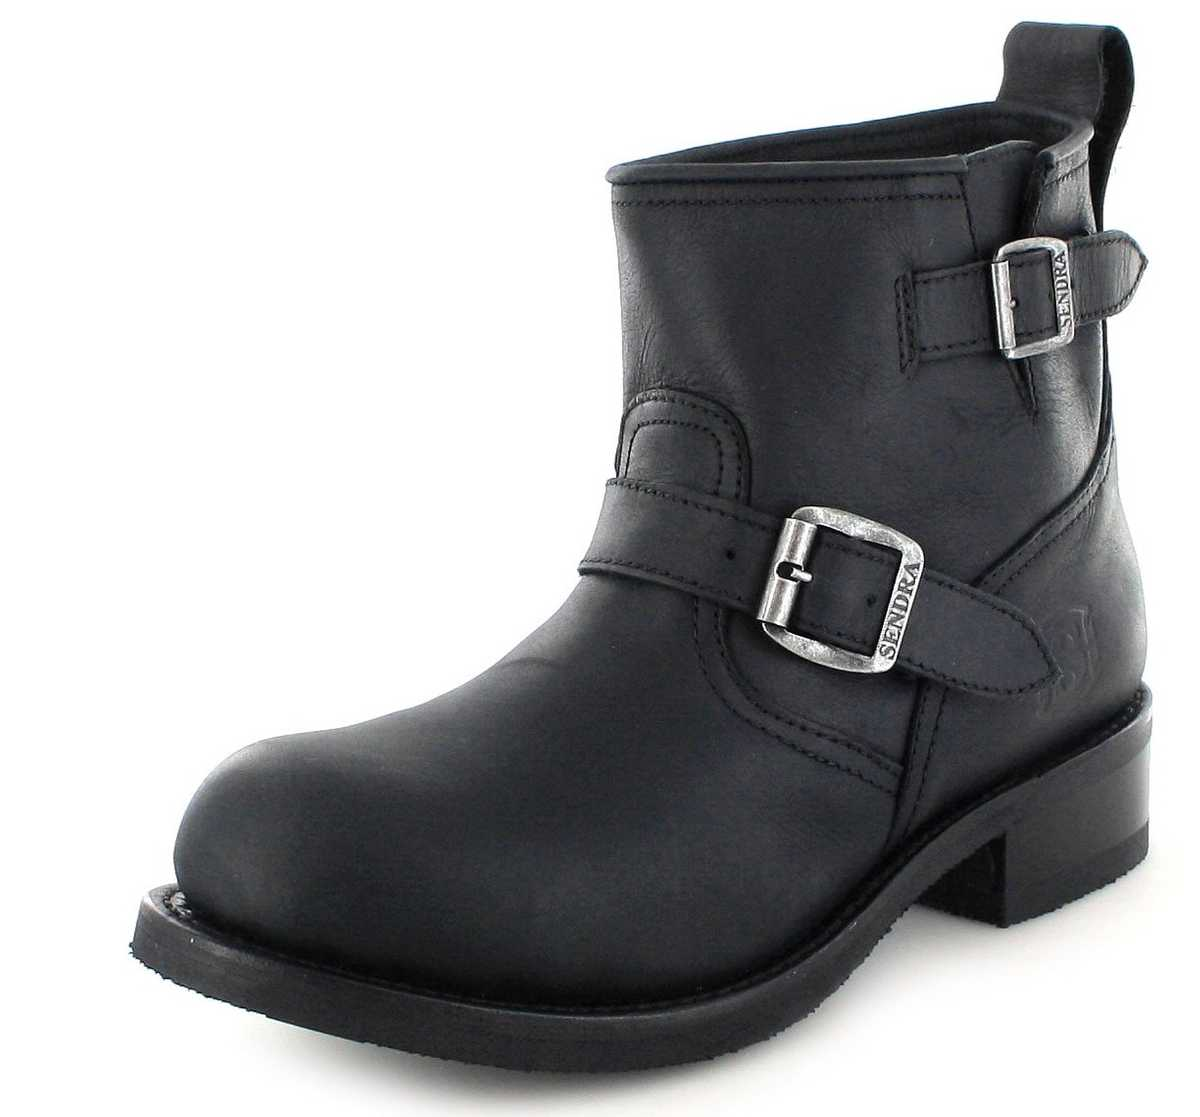 Sendra Boots 11973 Negro Engineerstiefelette Thinsulate Insulation Isolierung - schwarz